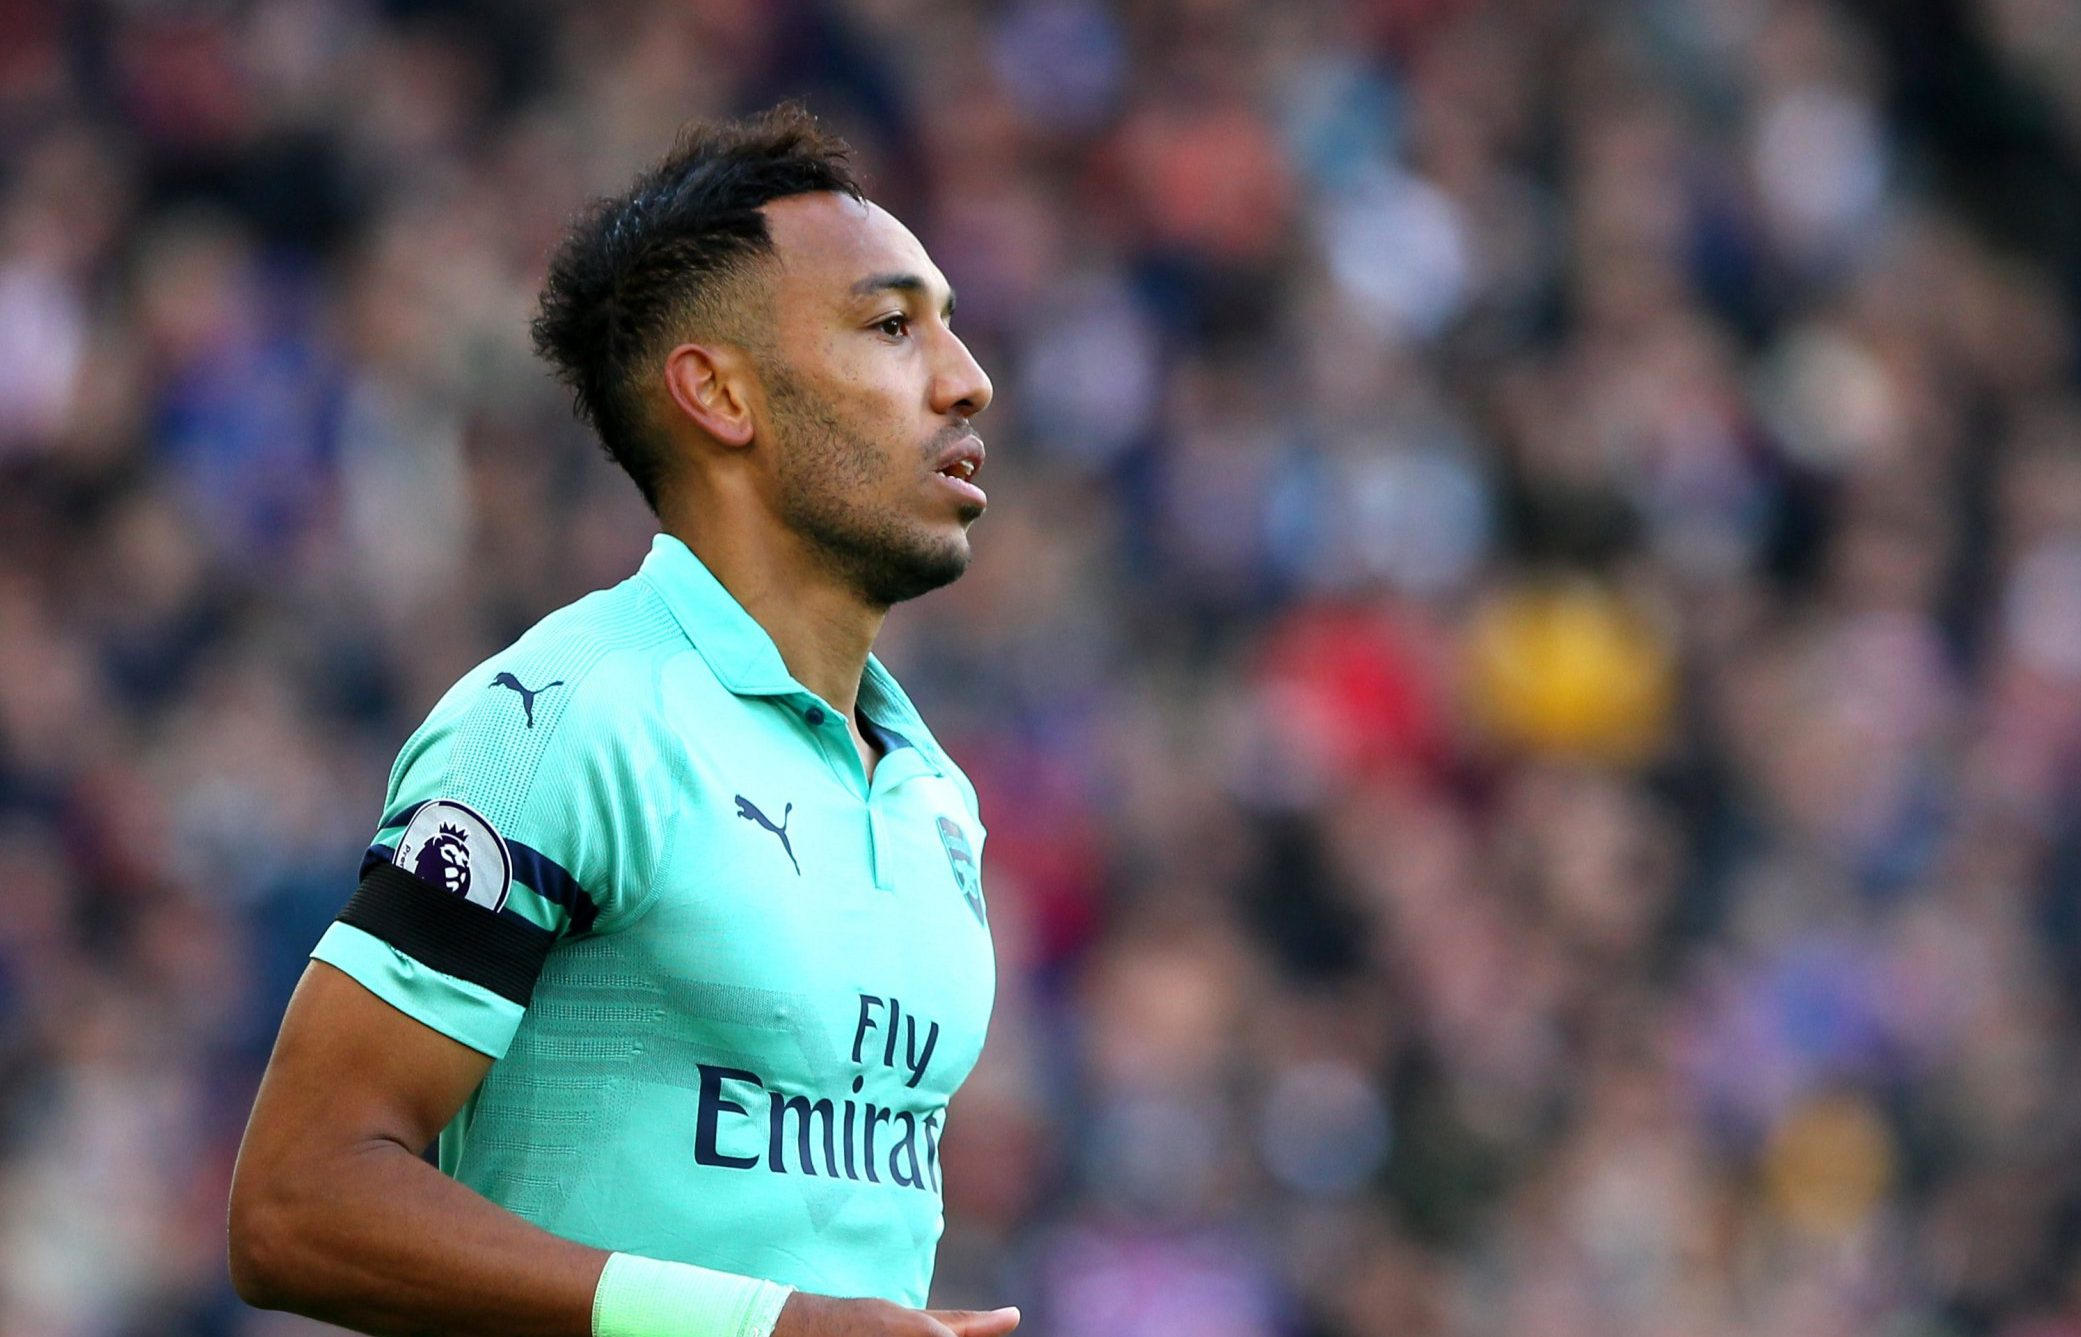 LONDON, ENGLAND - OCTOBER 28: Pierre-Emerick Aubameyang of Arsenal during the Premier League match between Crystal Palace and Arsenal FC at Selhurst Park on October 28, 2018 in London, United Kingdom. (Photo by Chloe Knott - Danehouse/Getty Images)